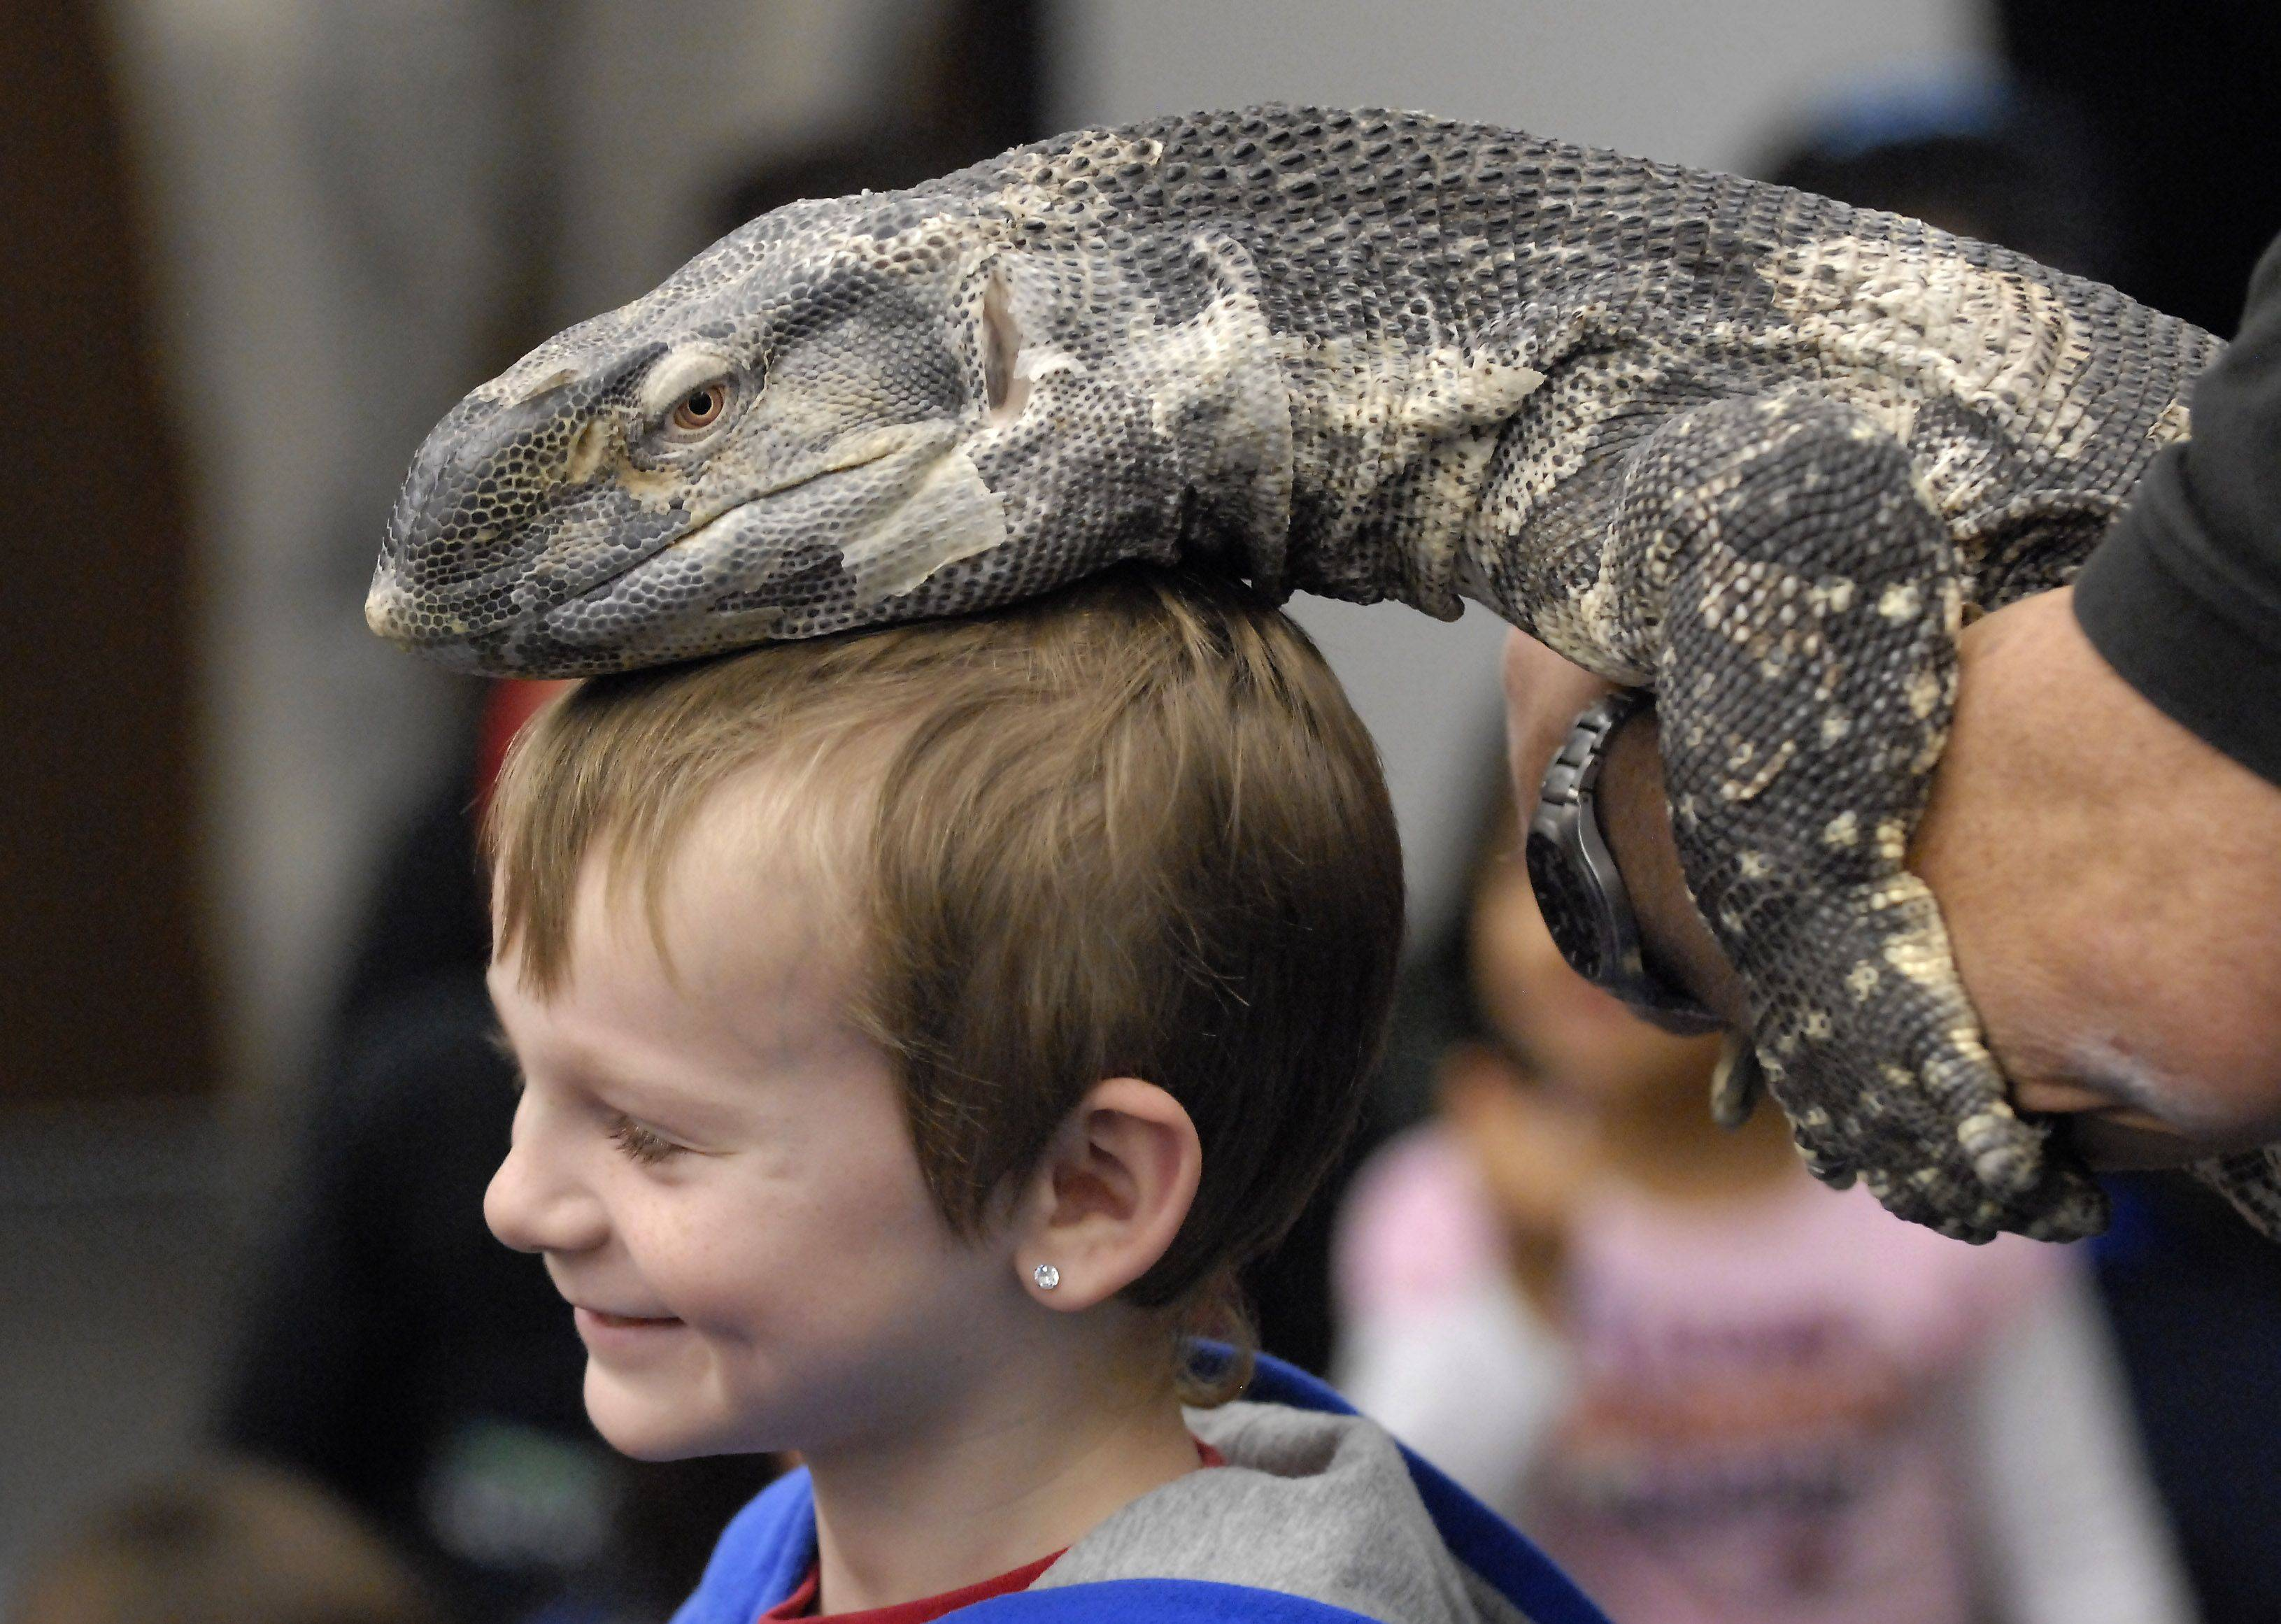 Nathan York, 6, has a black-throated monitor lizard placed on his head during a reptile presentation Wednesday at Indian Trails Public Library in Wheeling.